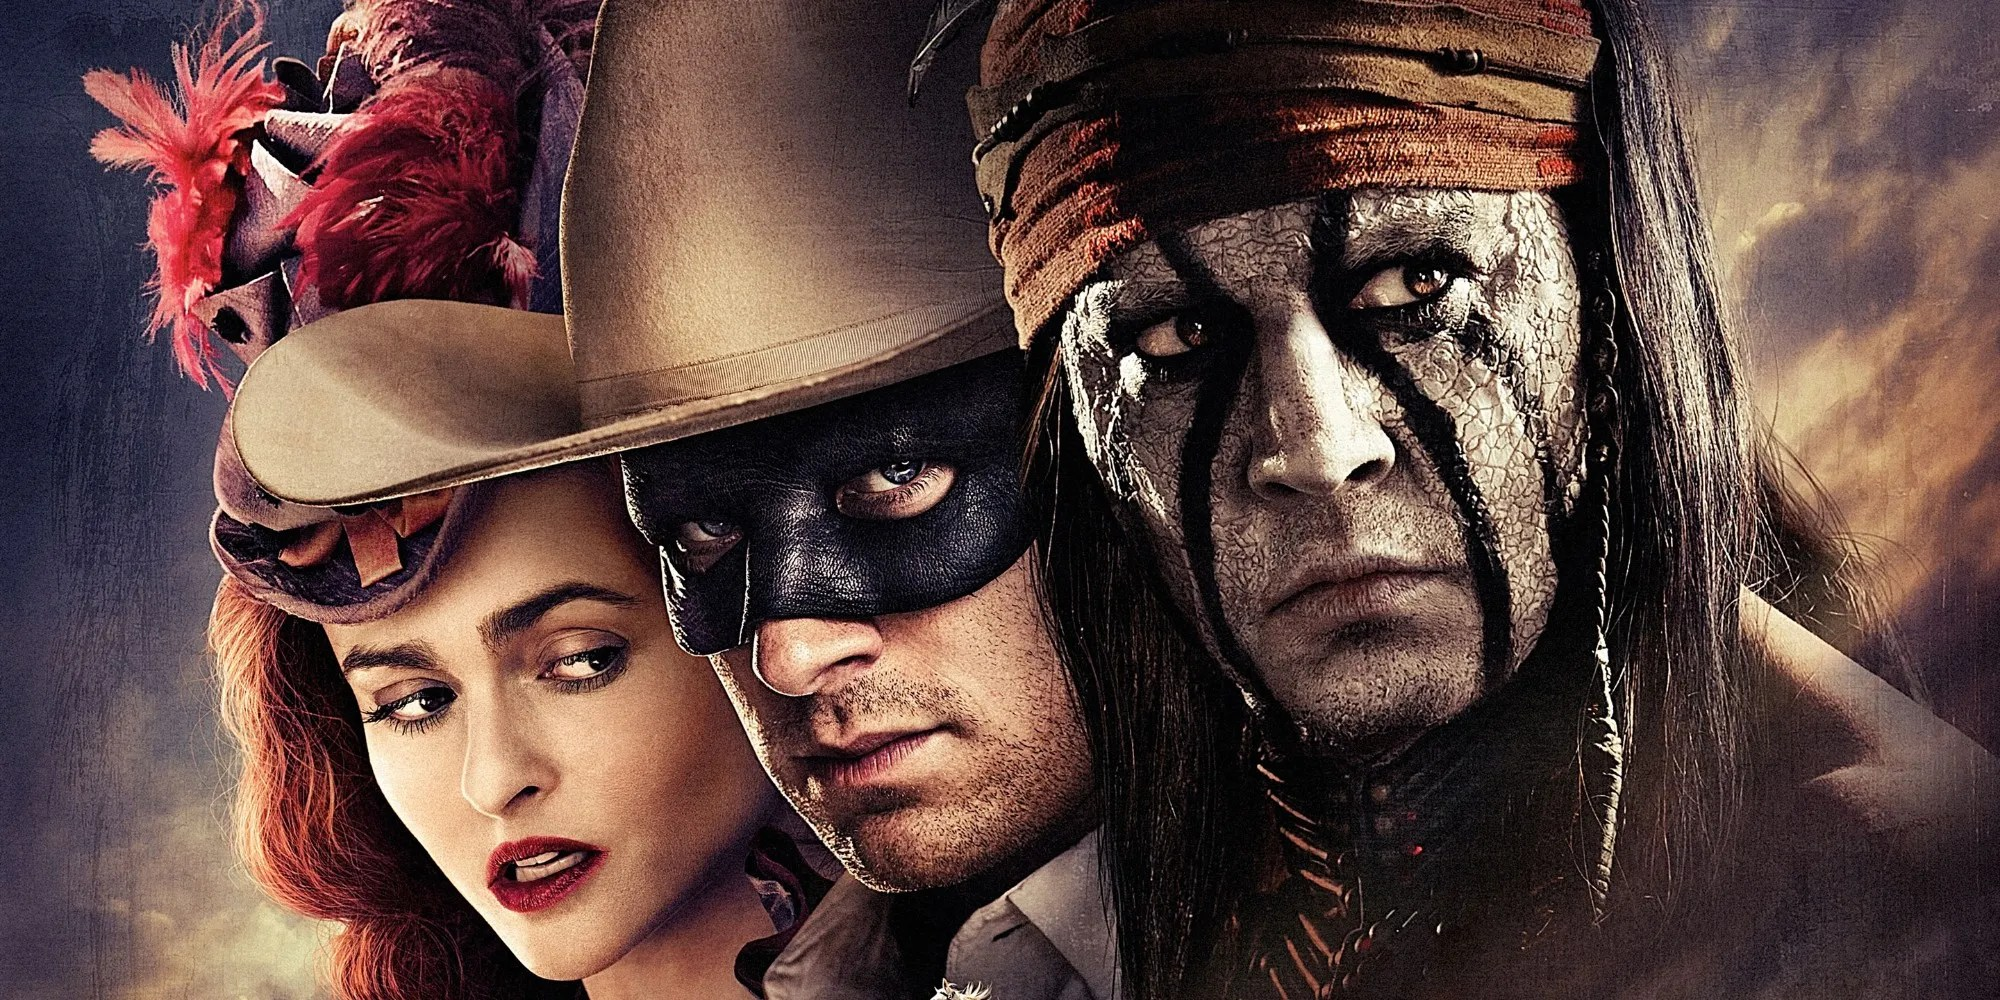 Why Disney S Lone Ranger Was Such A Huge Flop What Went Wrong